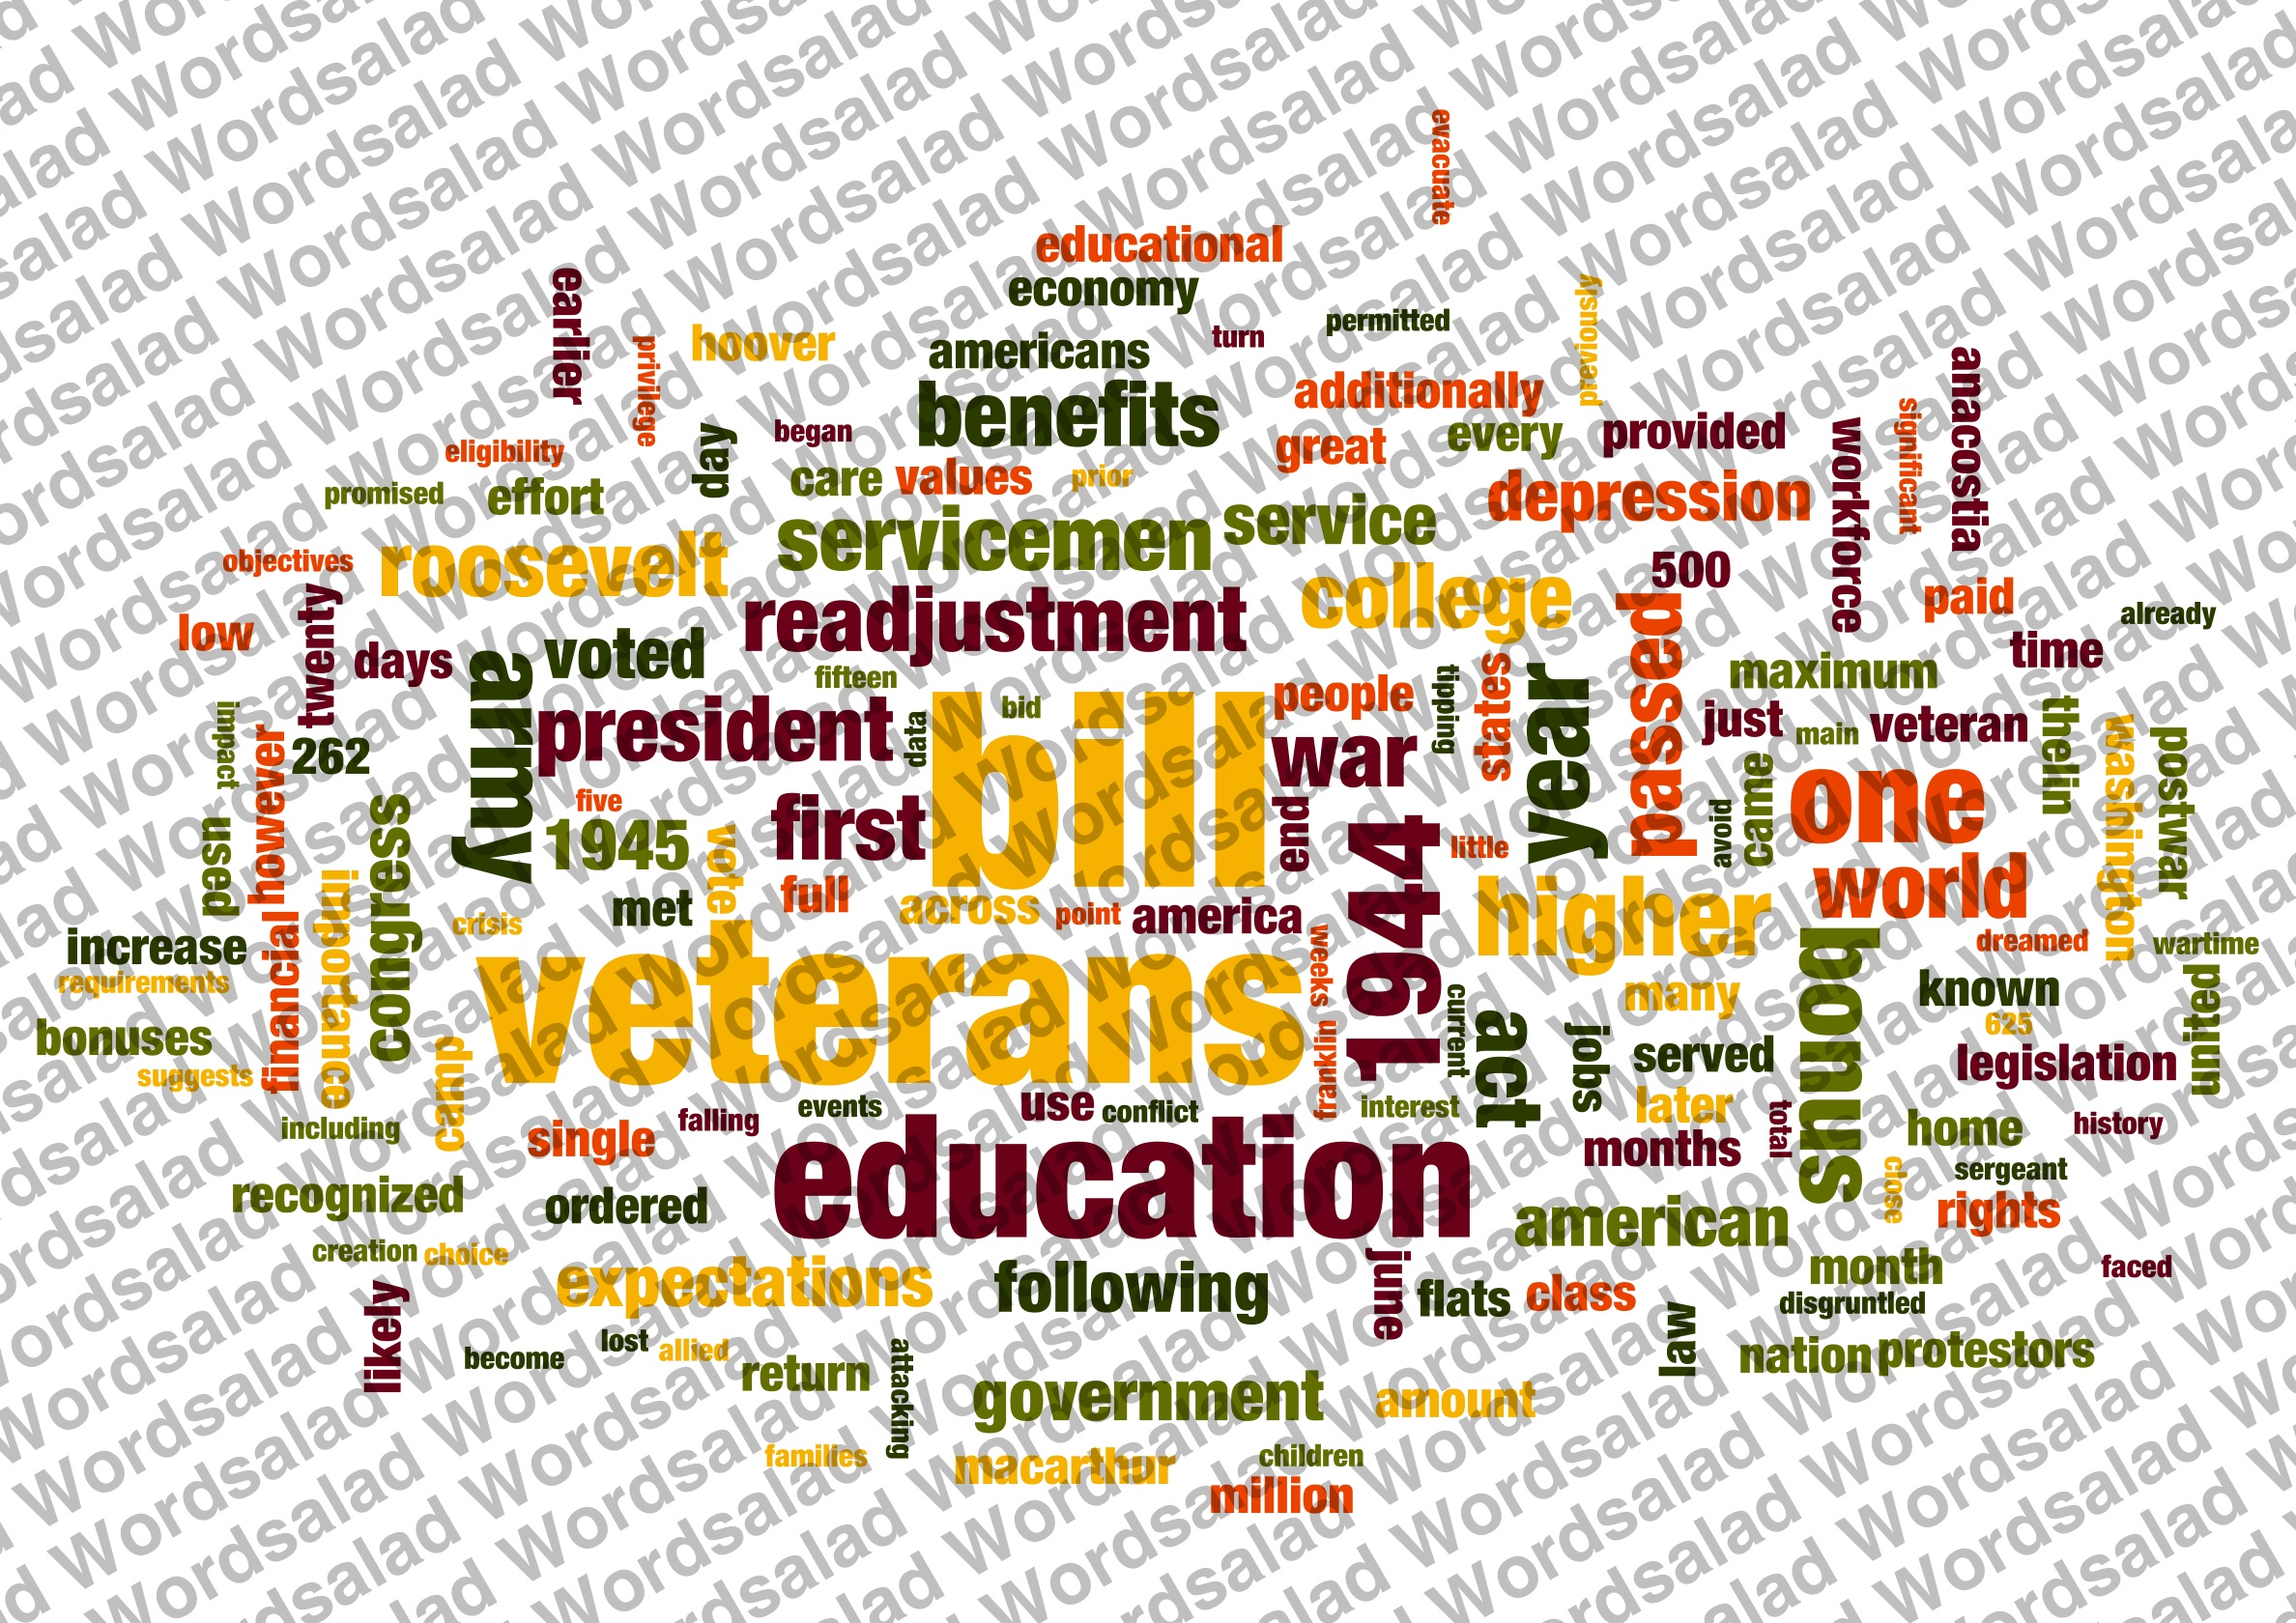 g i bill research paper 2011] the gi bill, higher education and american society 19 four years of college education the national bureau of economic research, found that the gi bill likely increased college completion rates for veterans by.